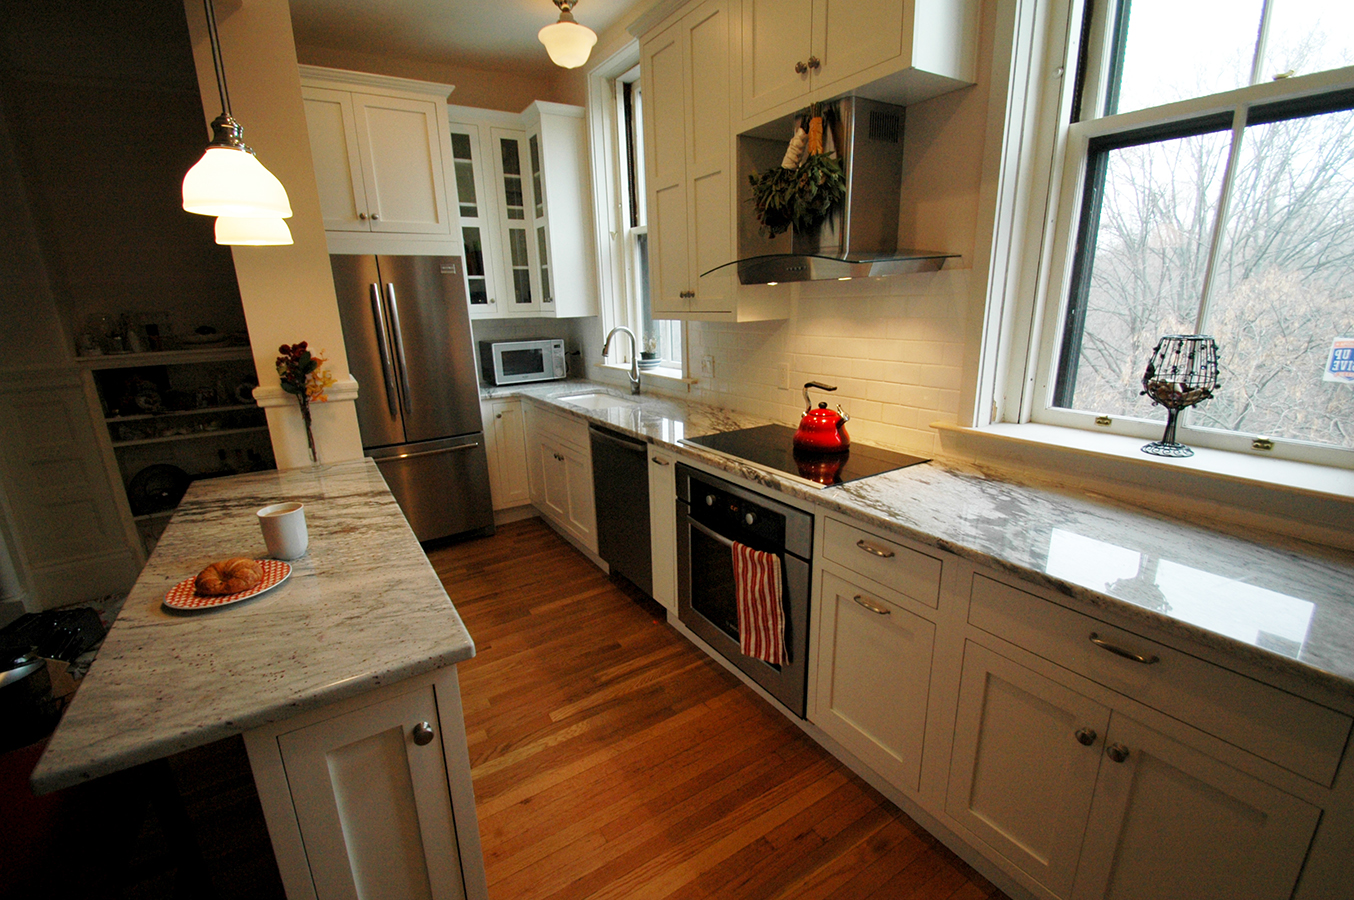 kitchen remodel brookline galley kitchen remodels brookline kitchen remodel whole kitchen small